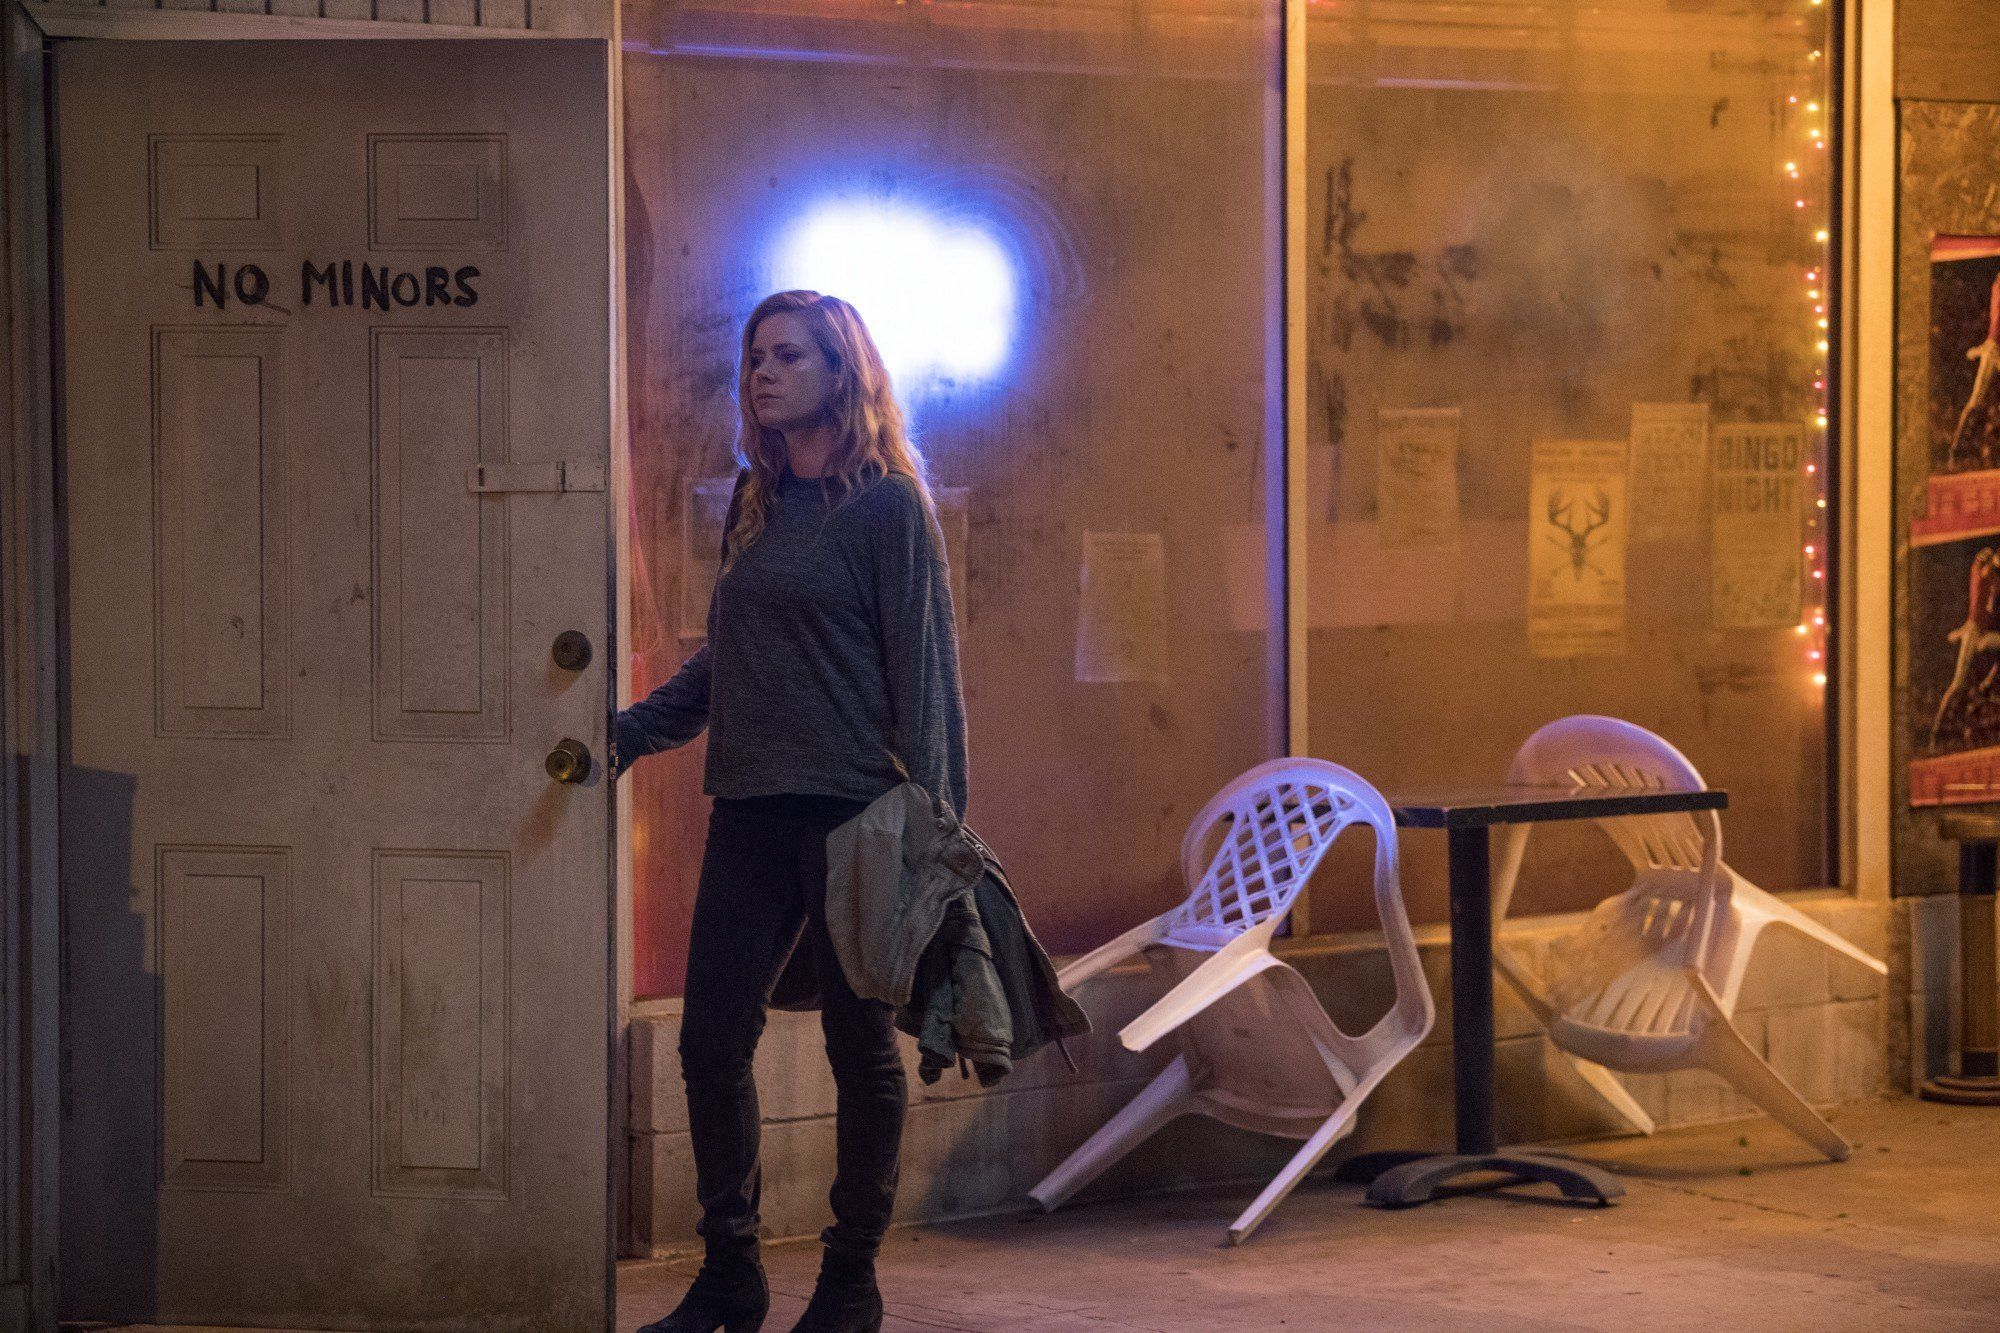 'Sharp Objects' Drops The Typical Detective Schtick To Become A Dreamier